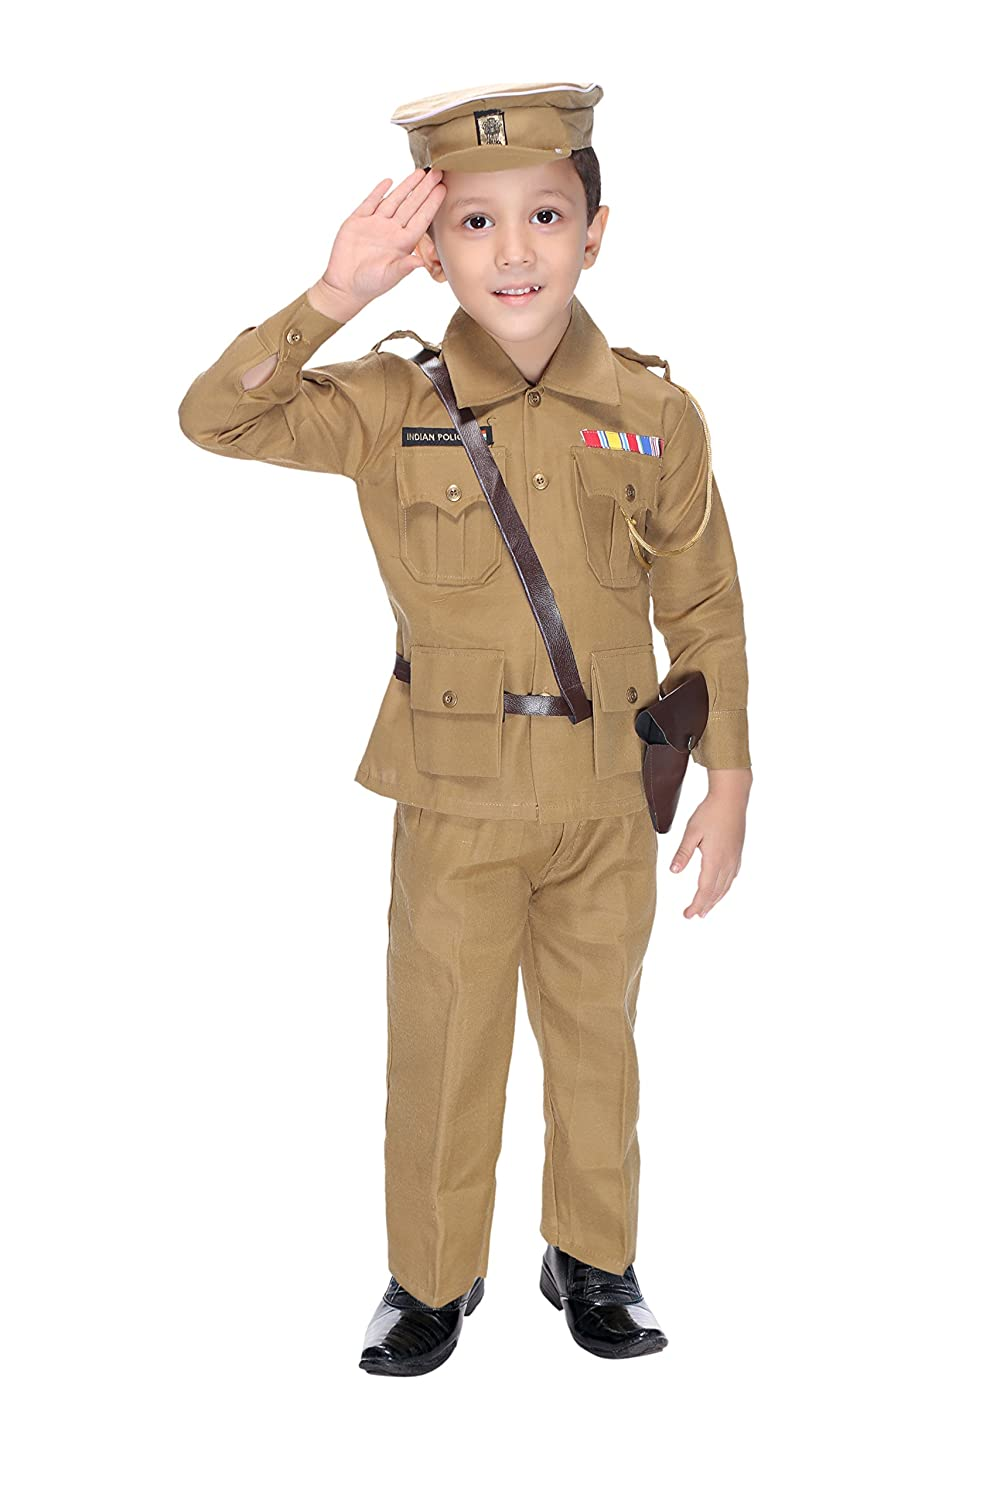 b494baf6f8226 Buy Smuktar garments Police Costume for Kids (6 to 7 Years) Online at Low  Prices in India - Amazon.in